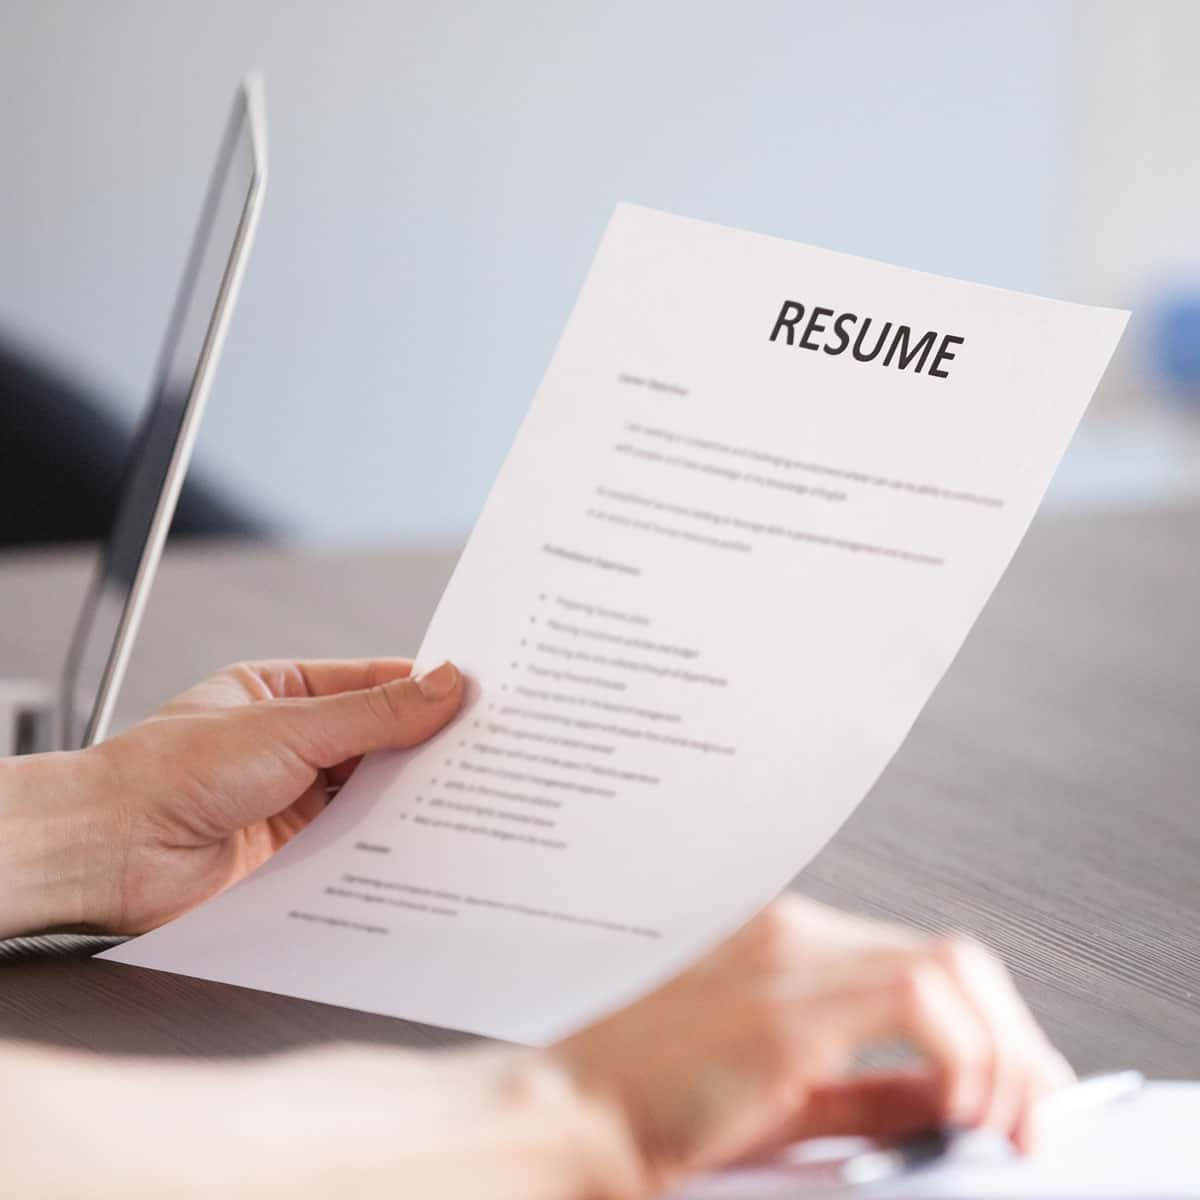 person looking at their resume